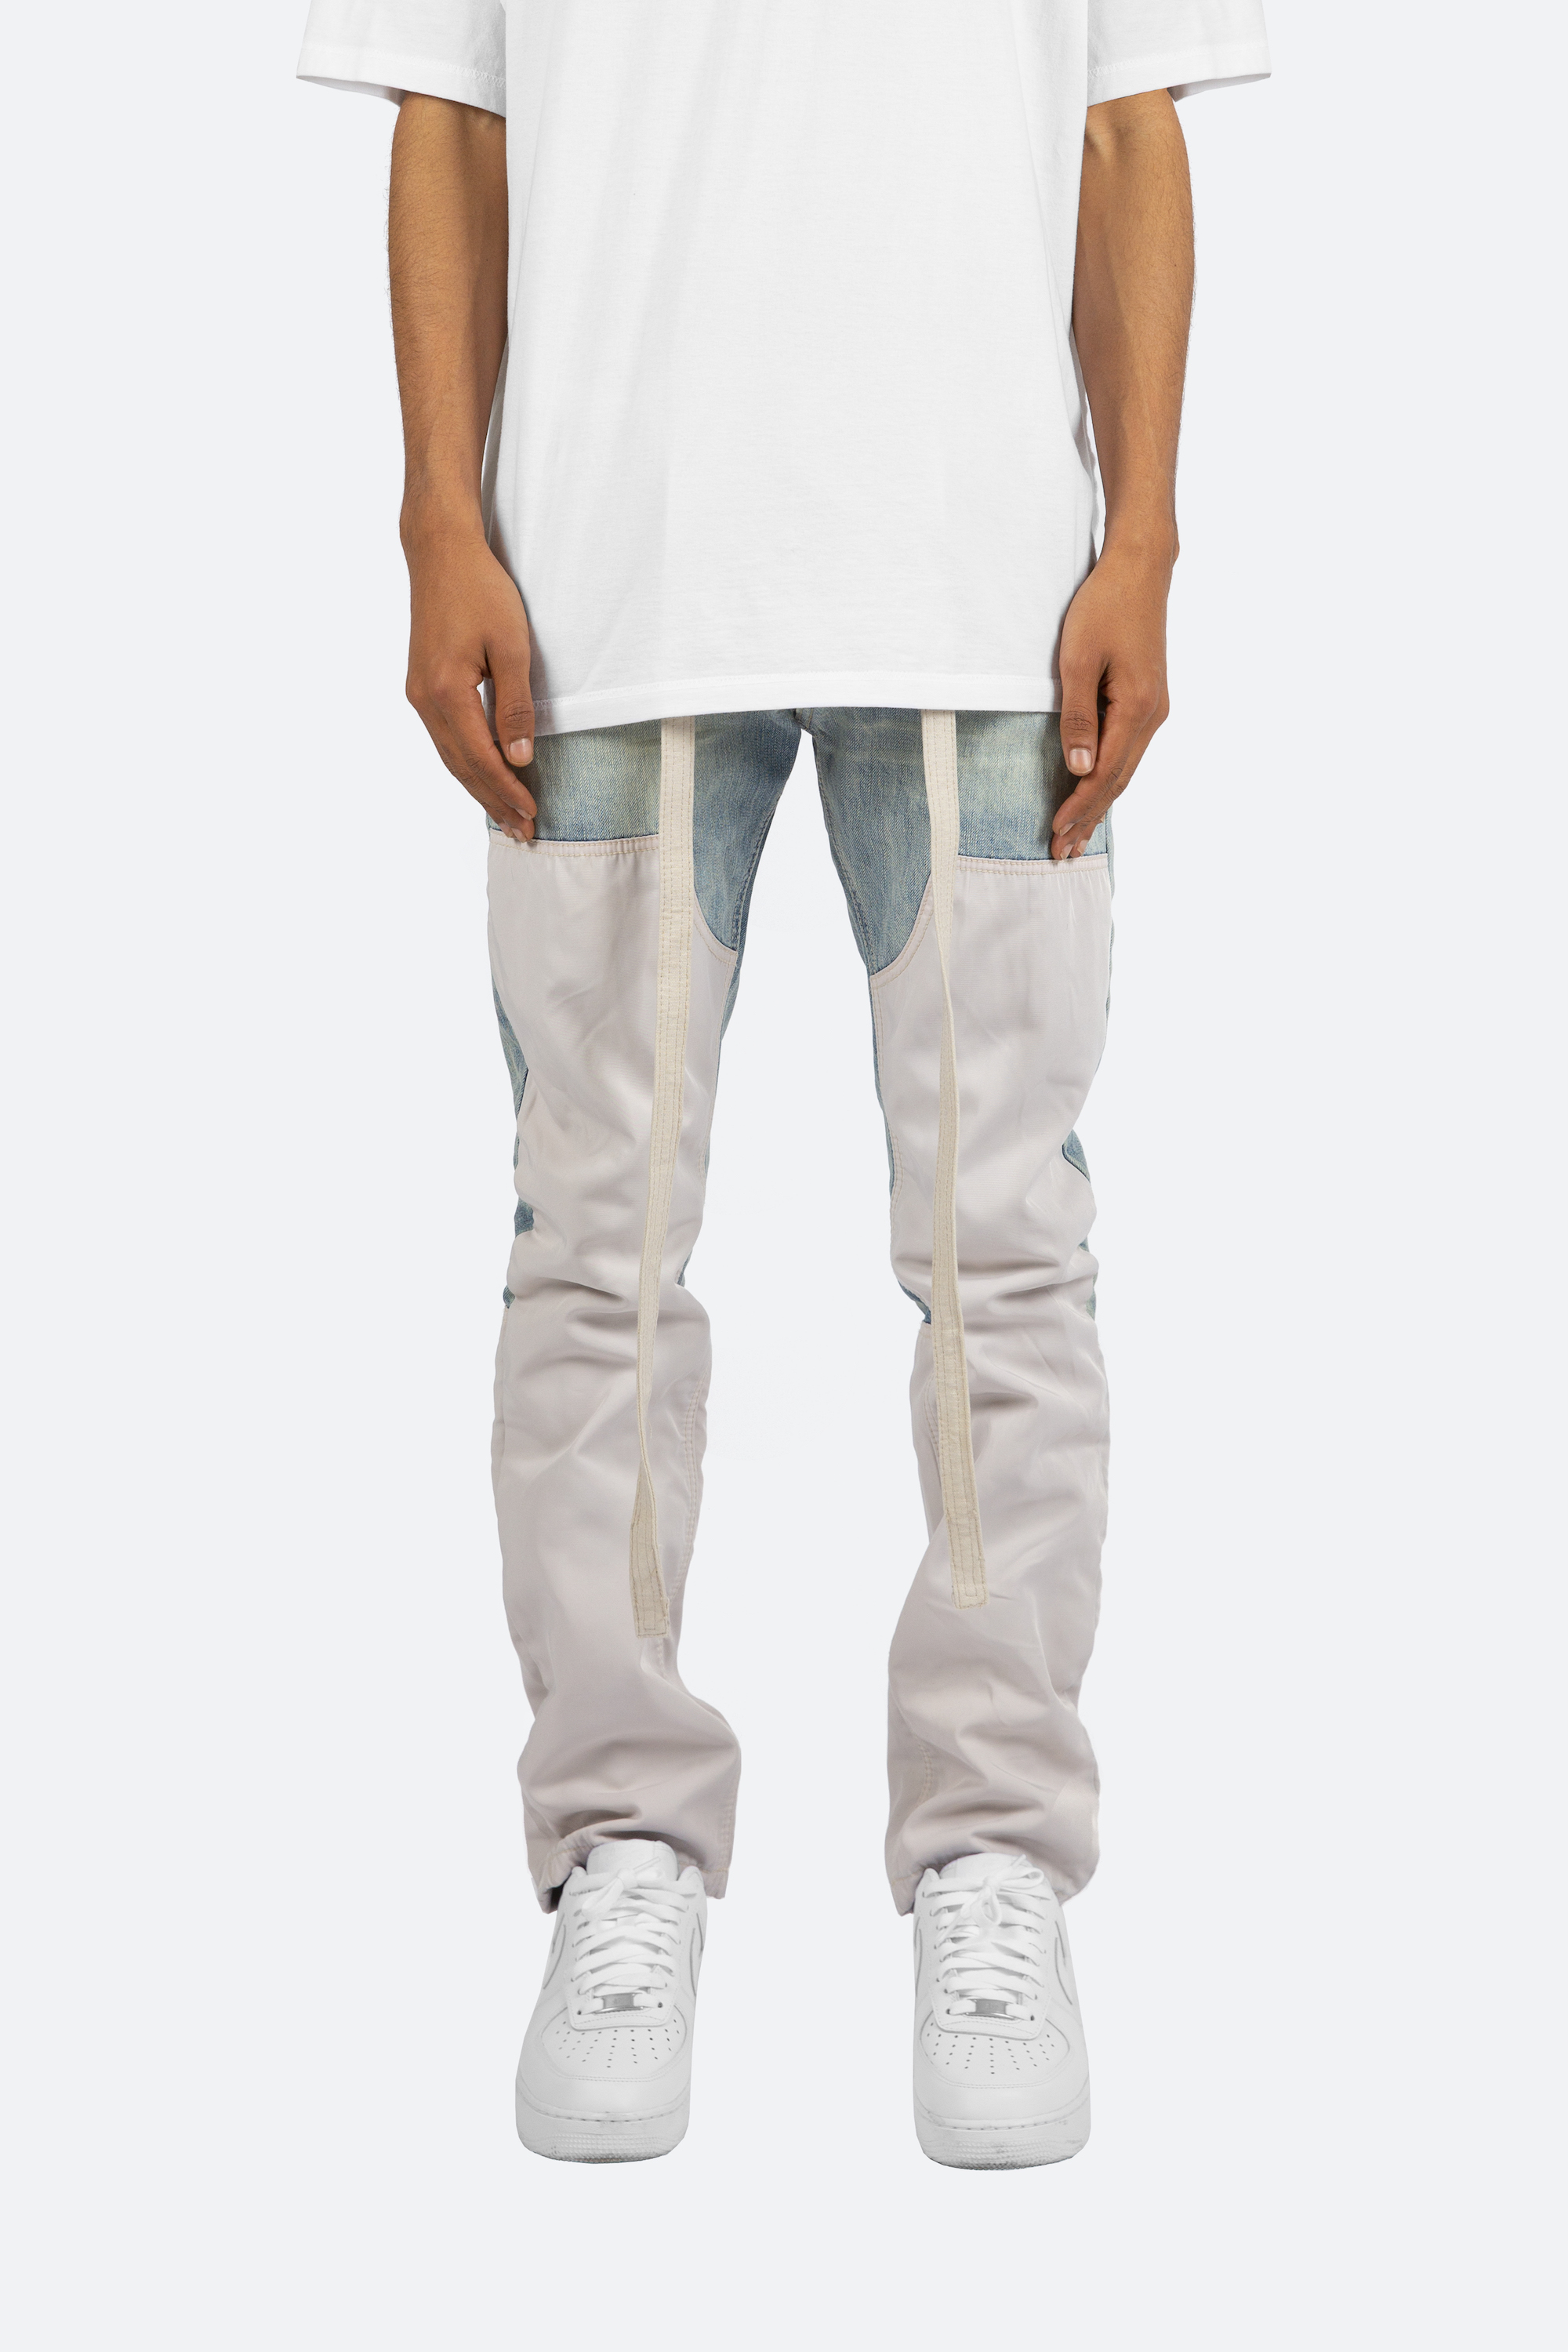 MNML white trousers